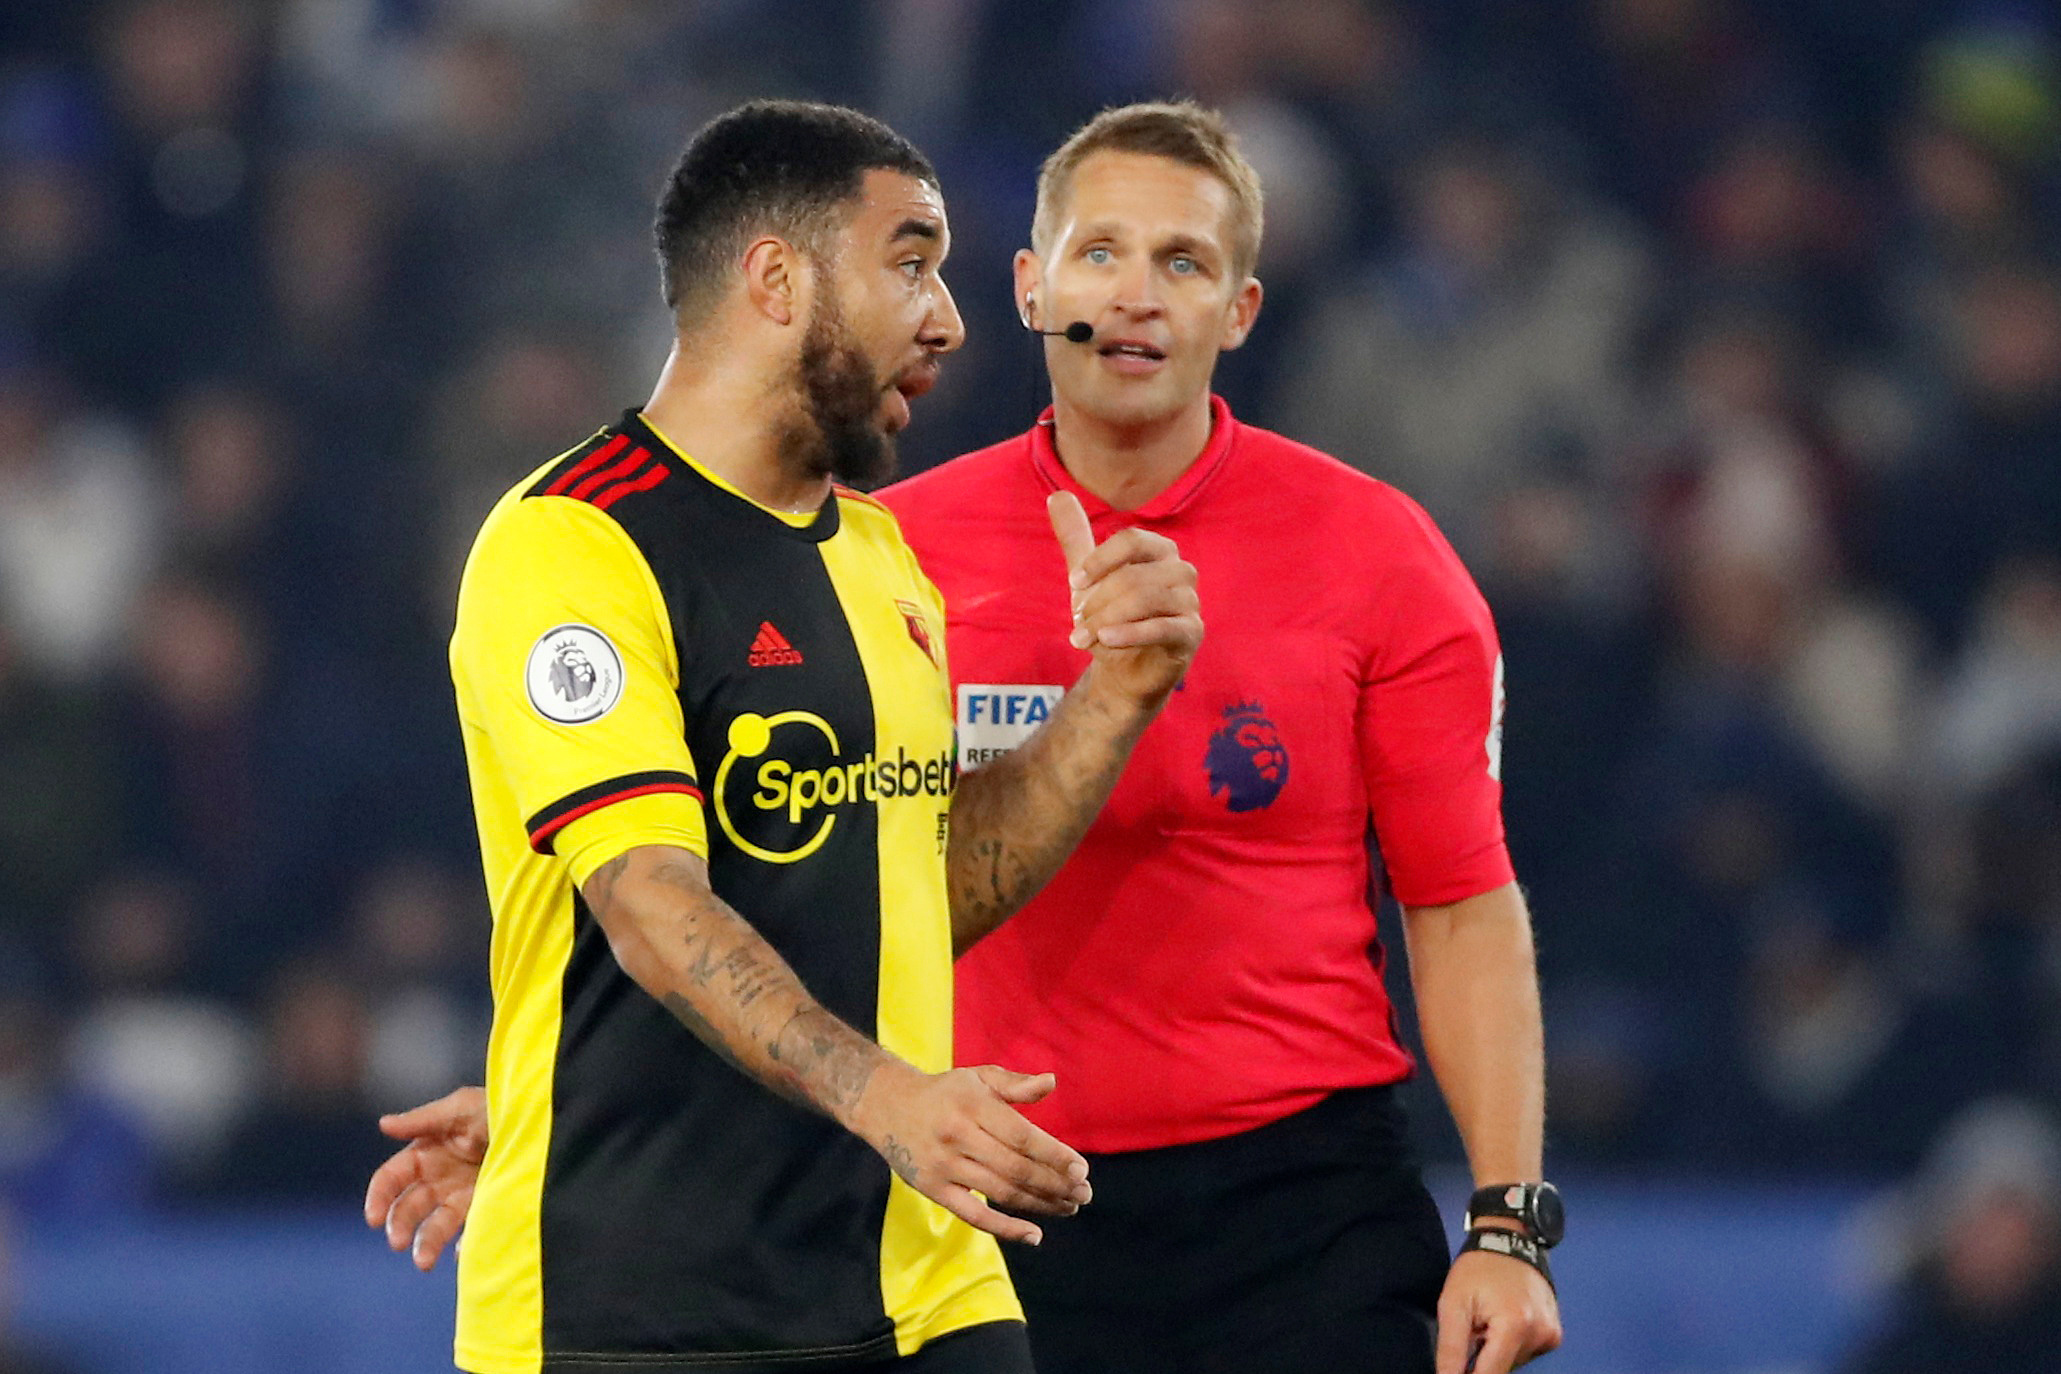 Craig Pawson referee for Watford's game with Everton